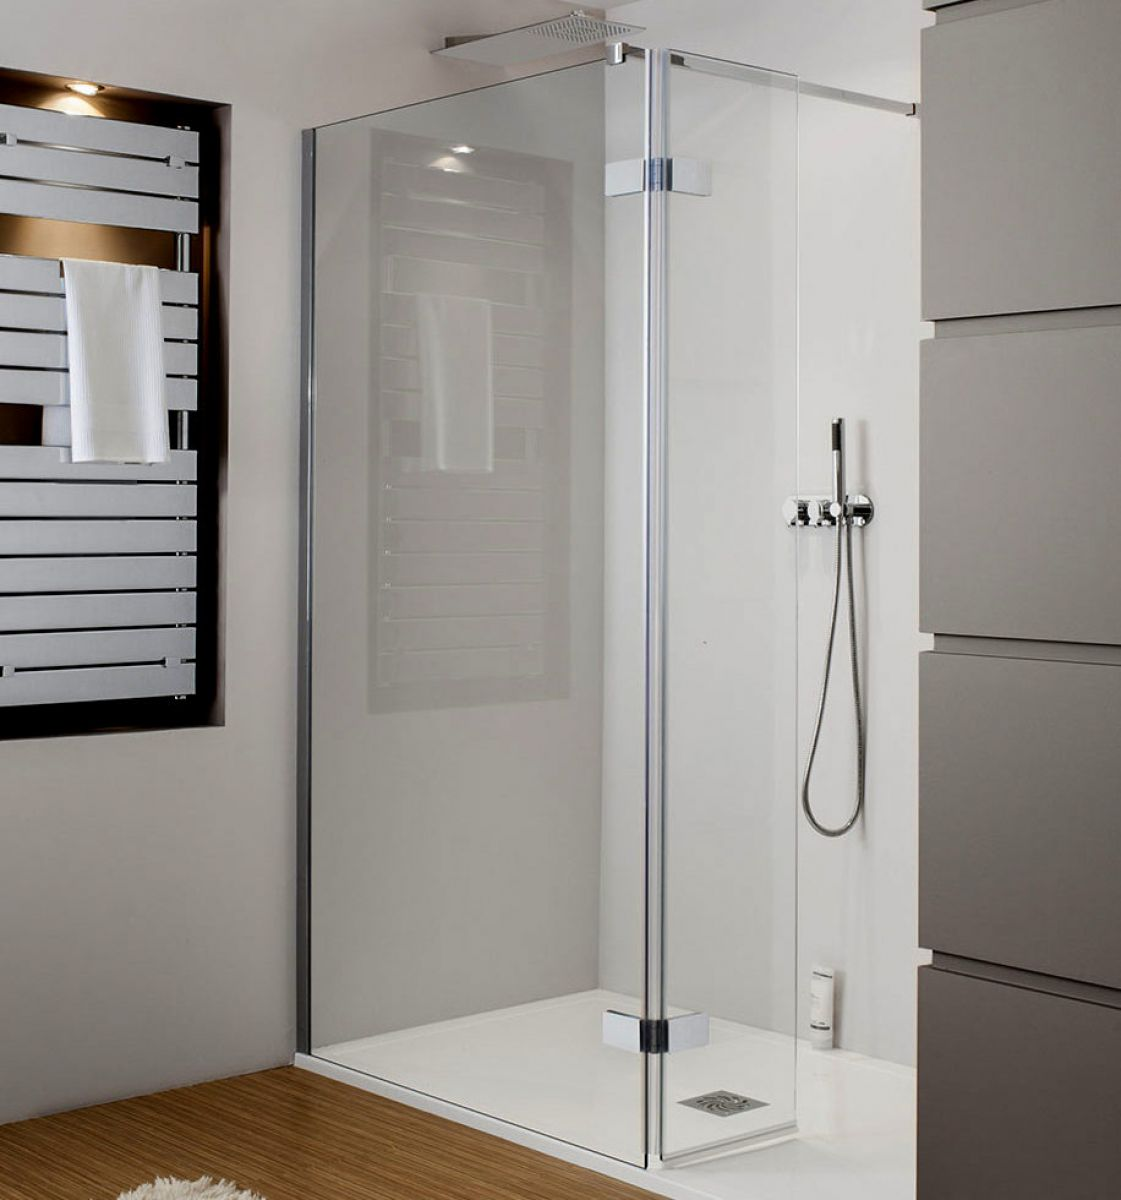 Simpsons Elite Walk in Easy Access Shower Enclosure UK Bathrooms